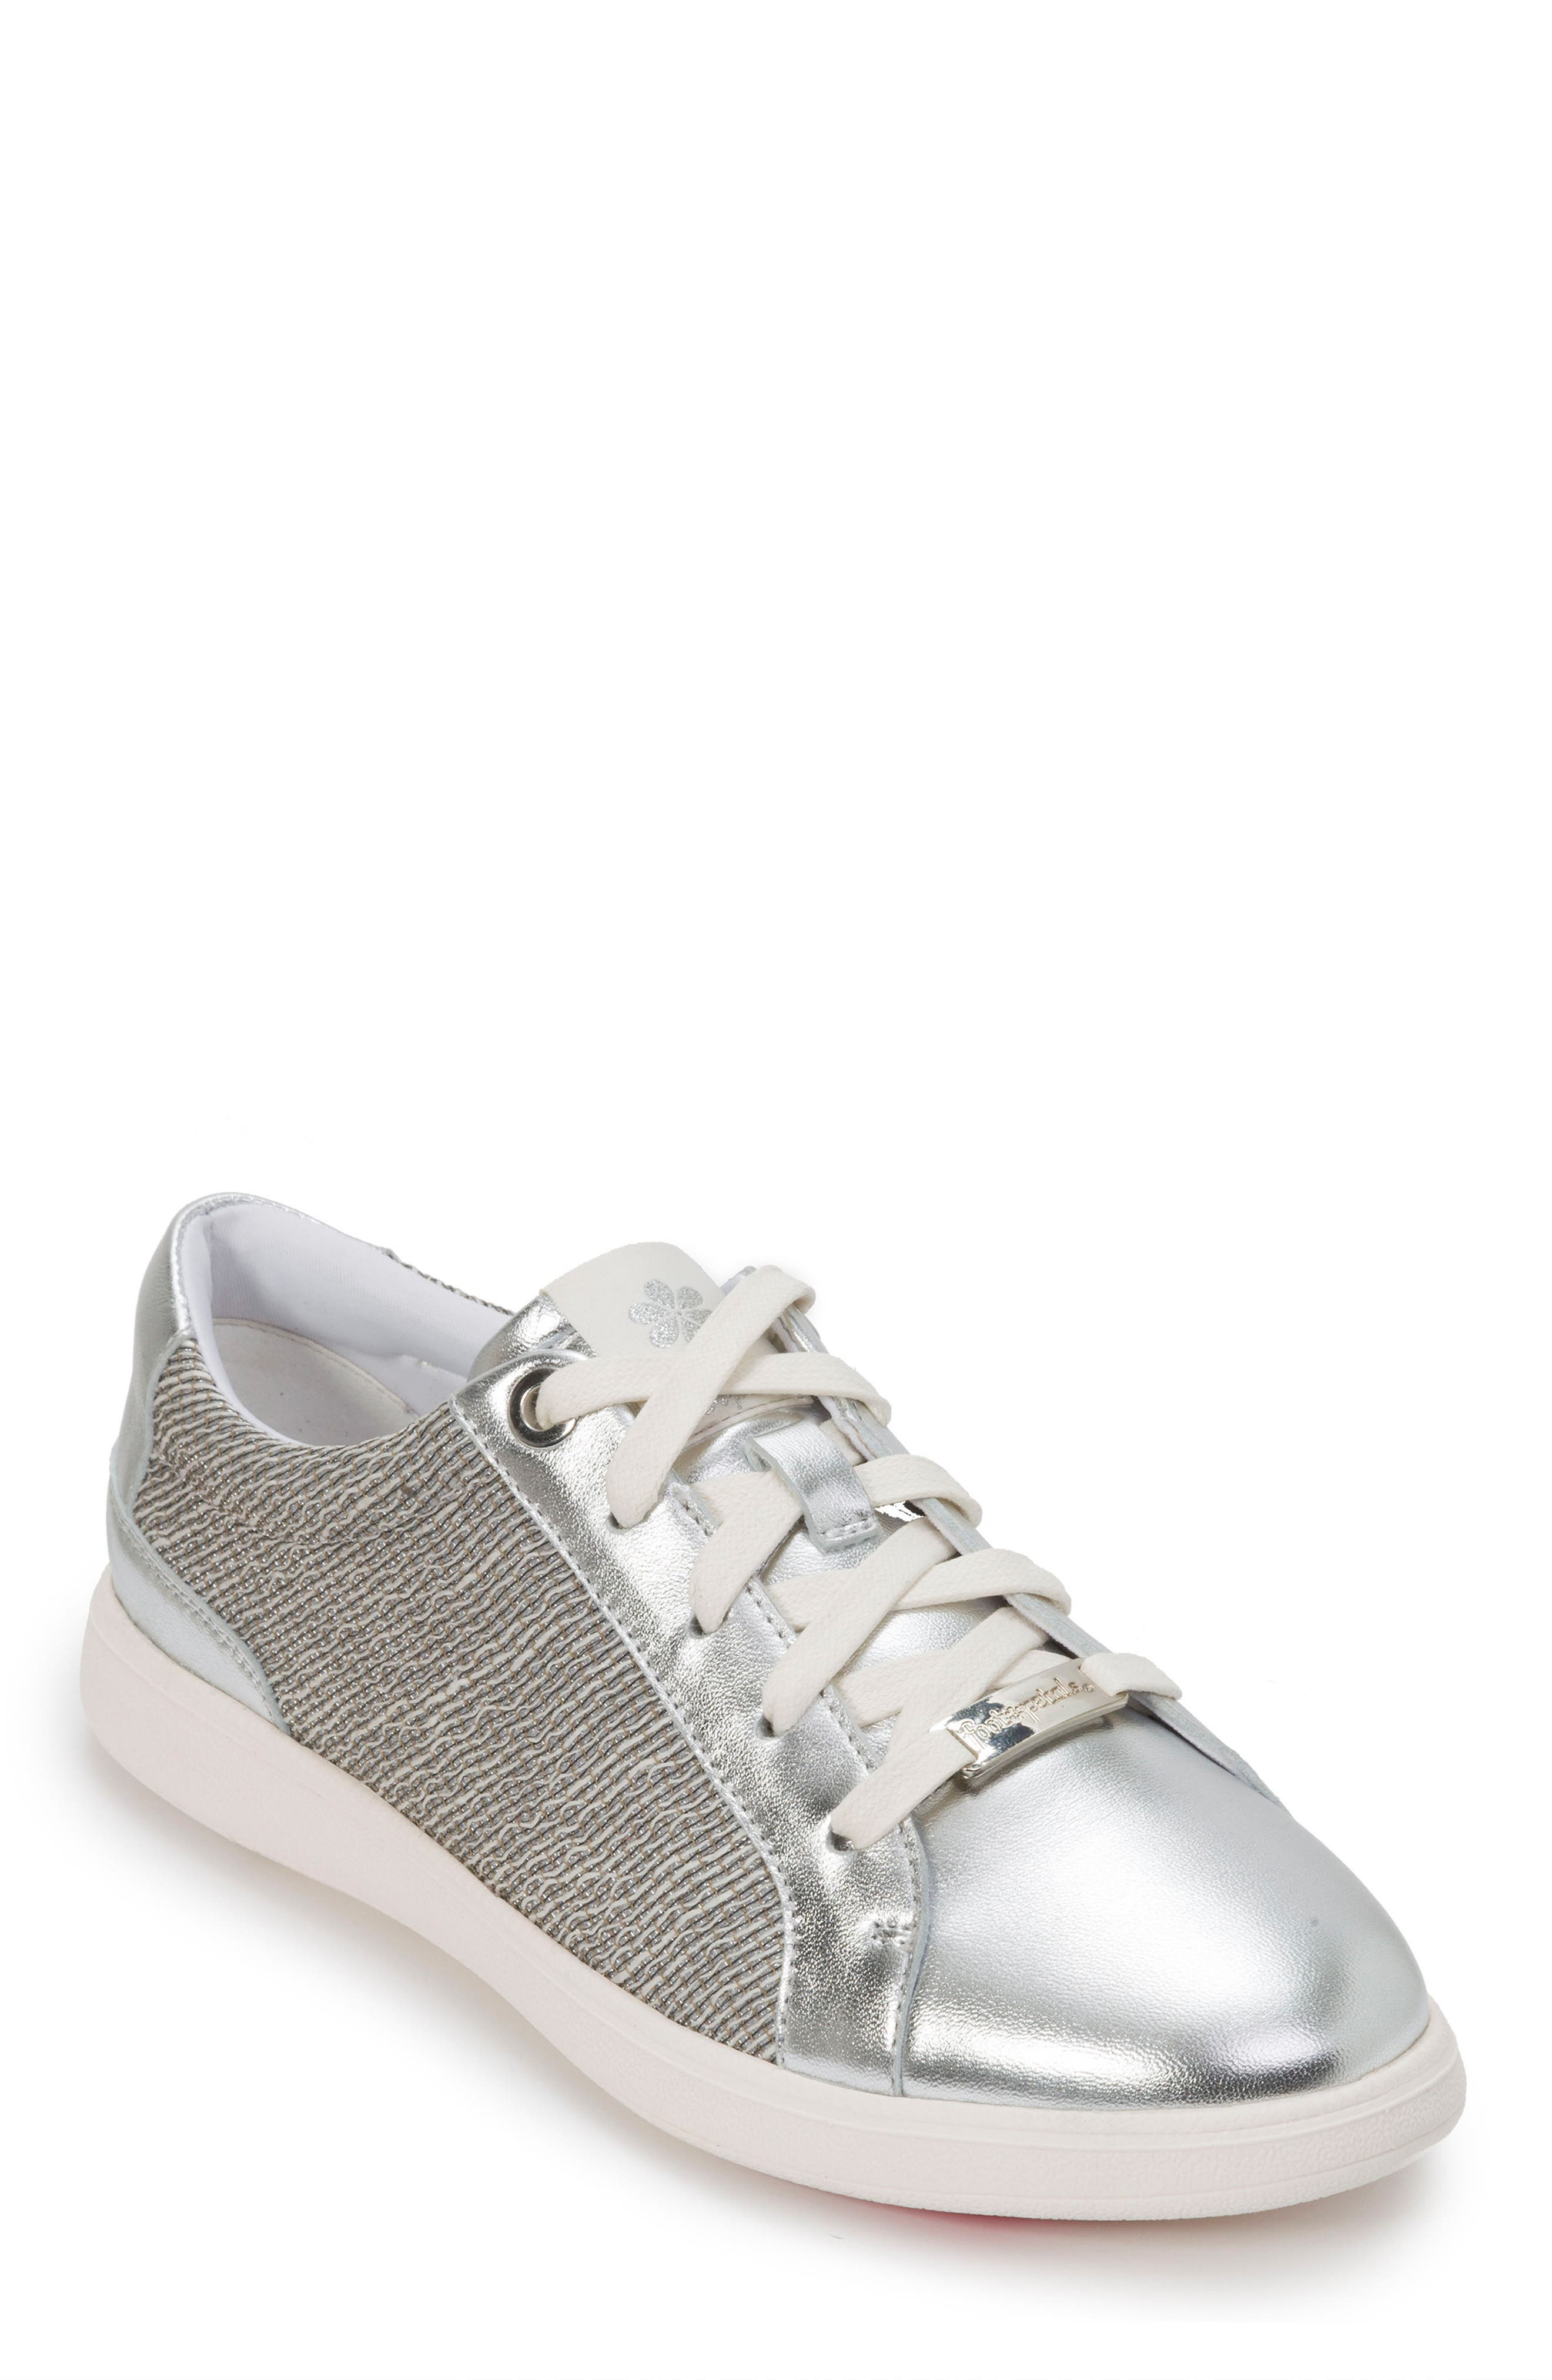 Andi Sneaker,                             Main thumbnail 1, color,                             SILVER LEATHER